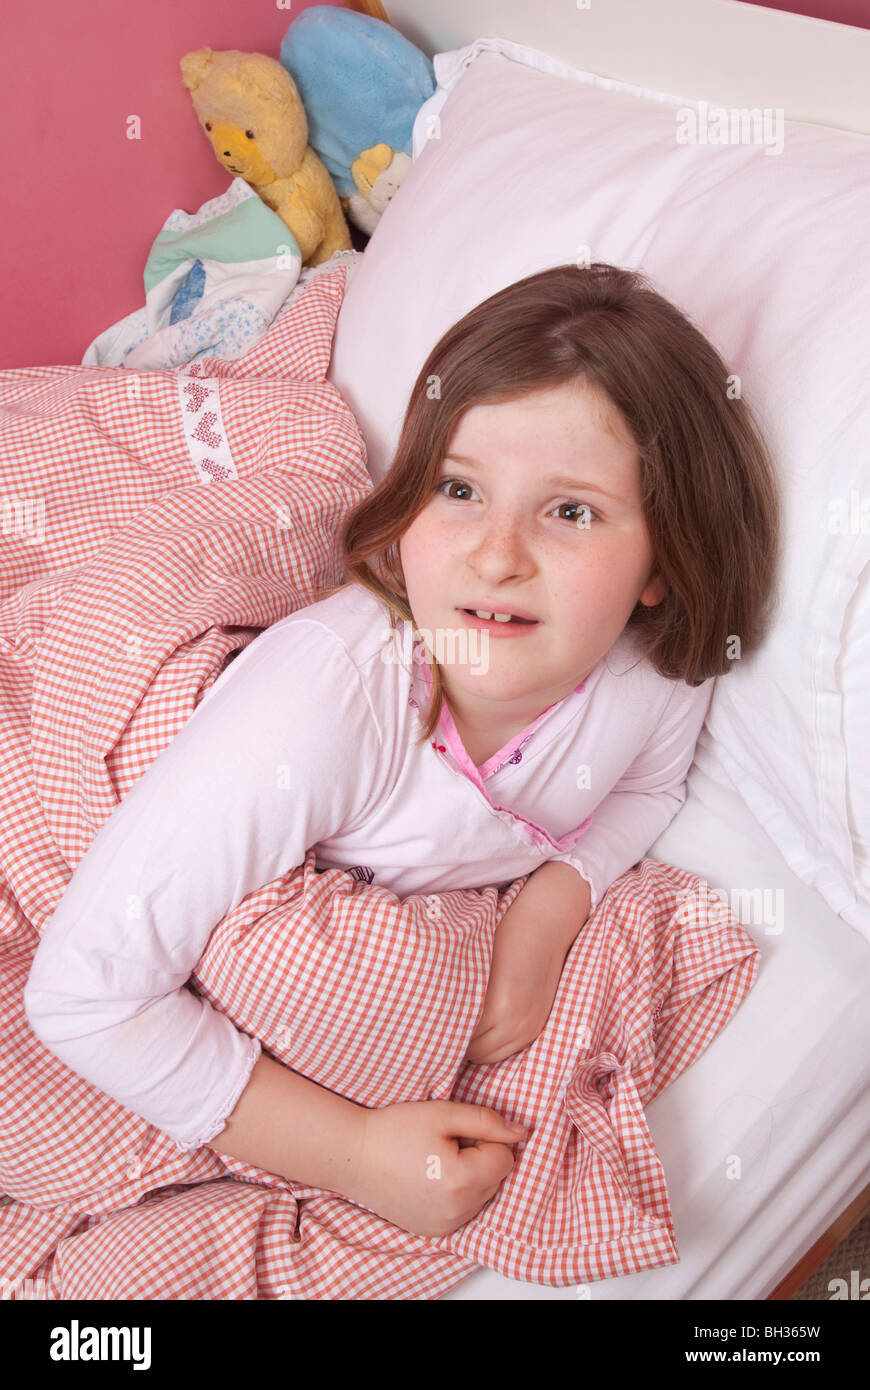 Young girl awakes in her bed at night UK - Stock Image